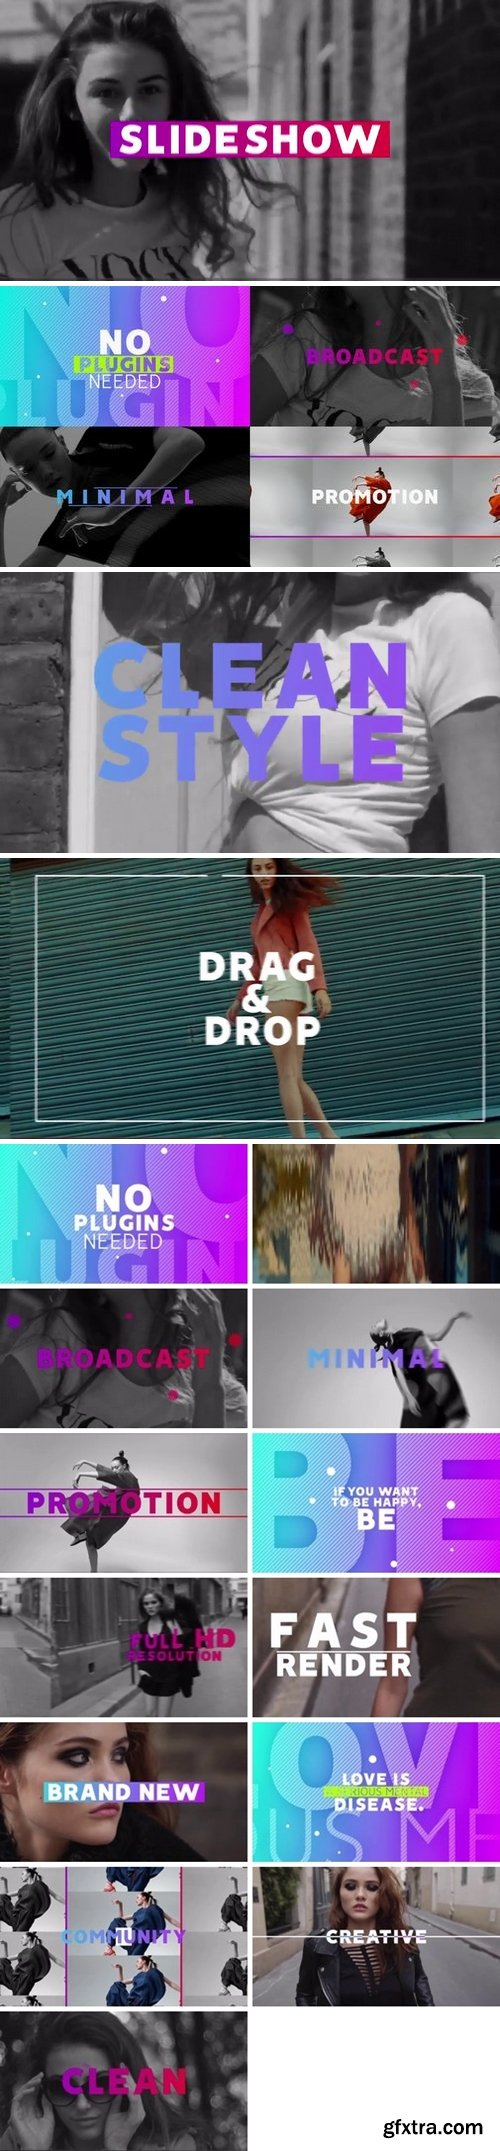 MotionArray - Clean Slideshow After Effects Templates 160064